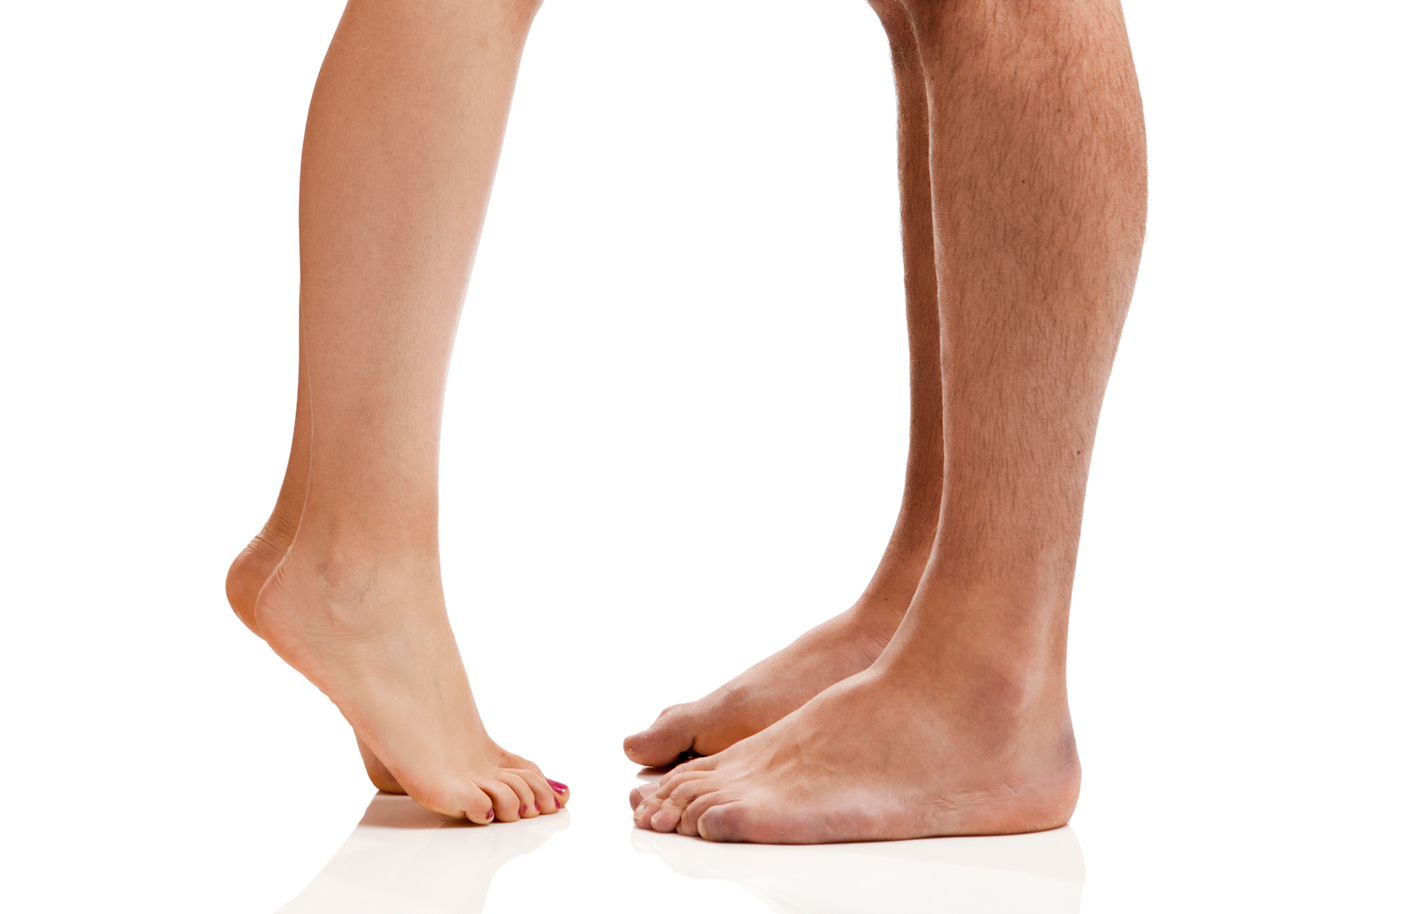 How To Remove Veins On Feet Naturally